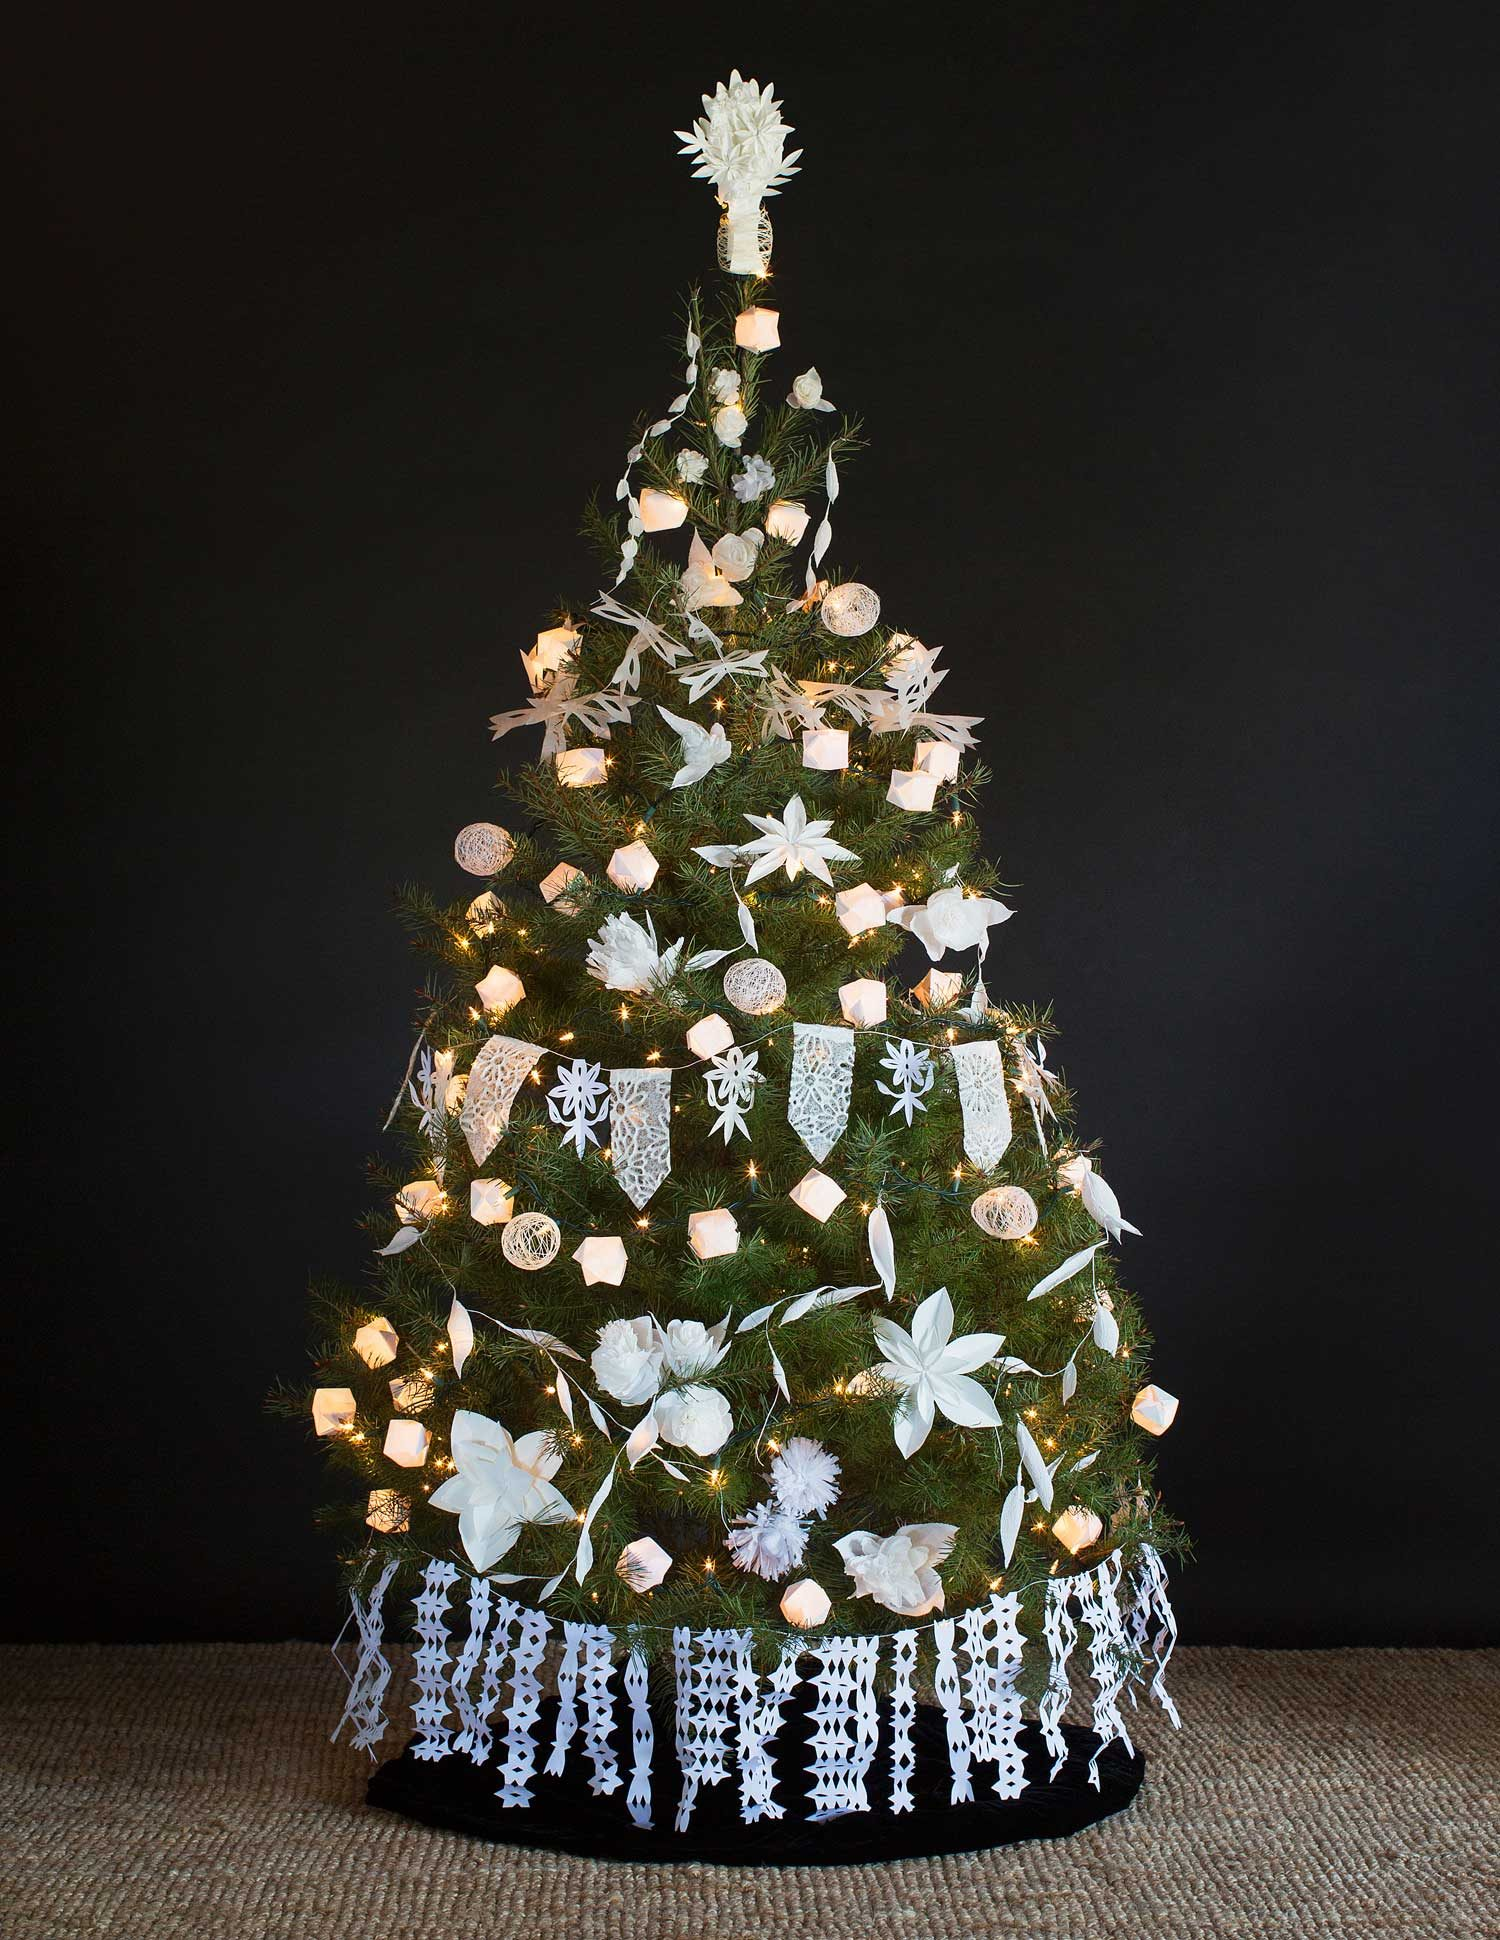 paperwhite tree - New Christmas Decorations